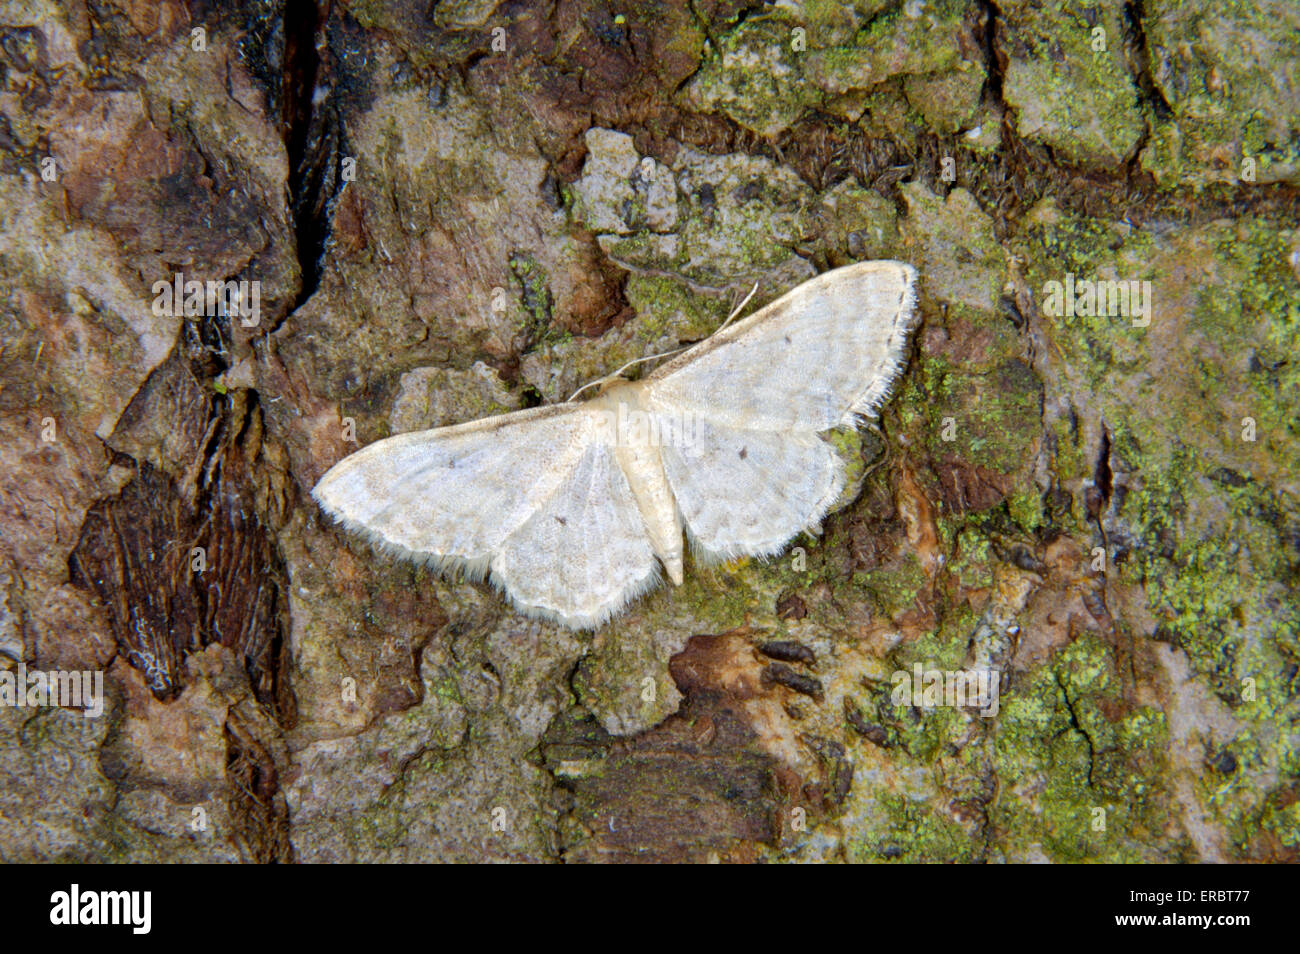 Small Fan-footed Wave - Idaea biselata - Stock Image